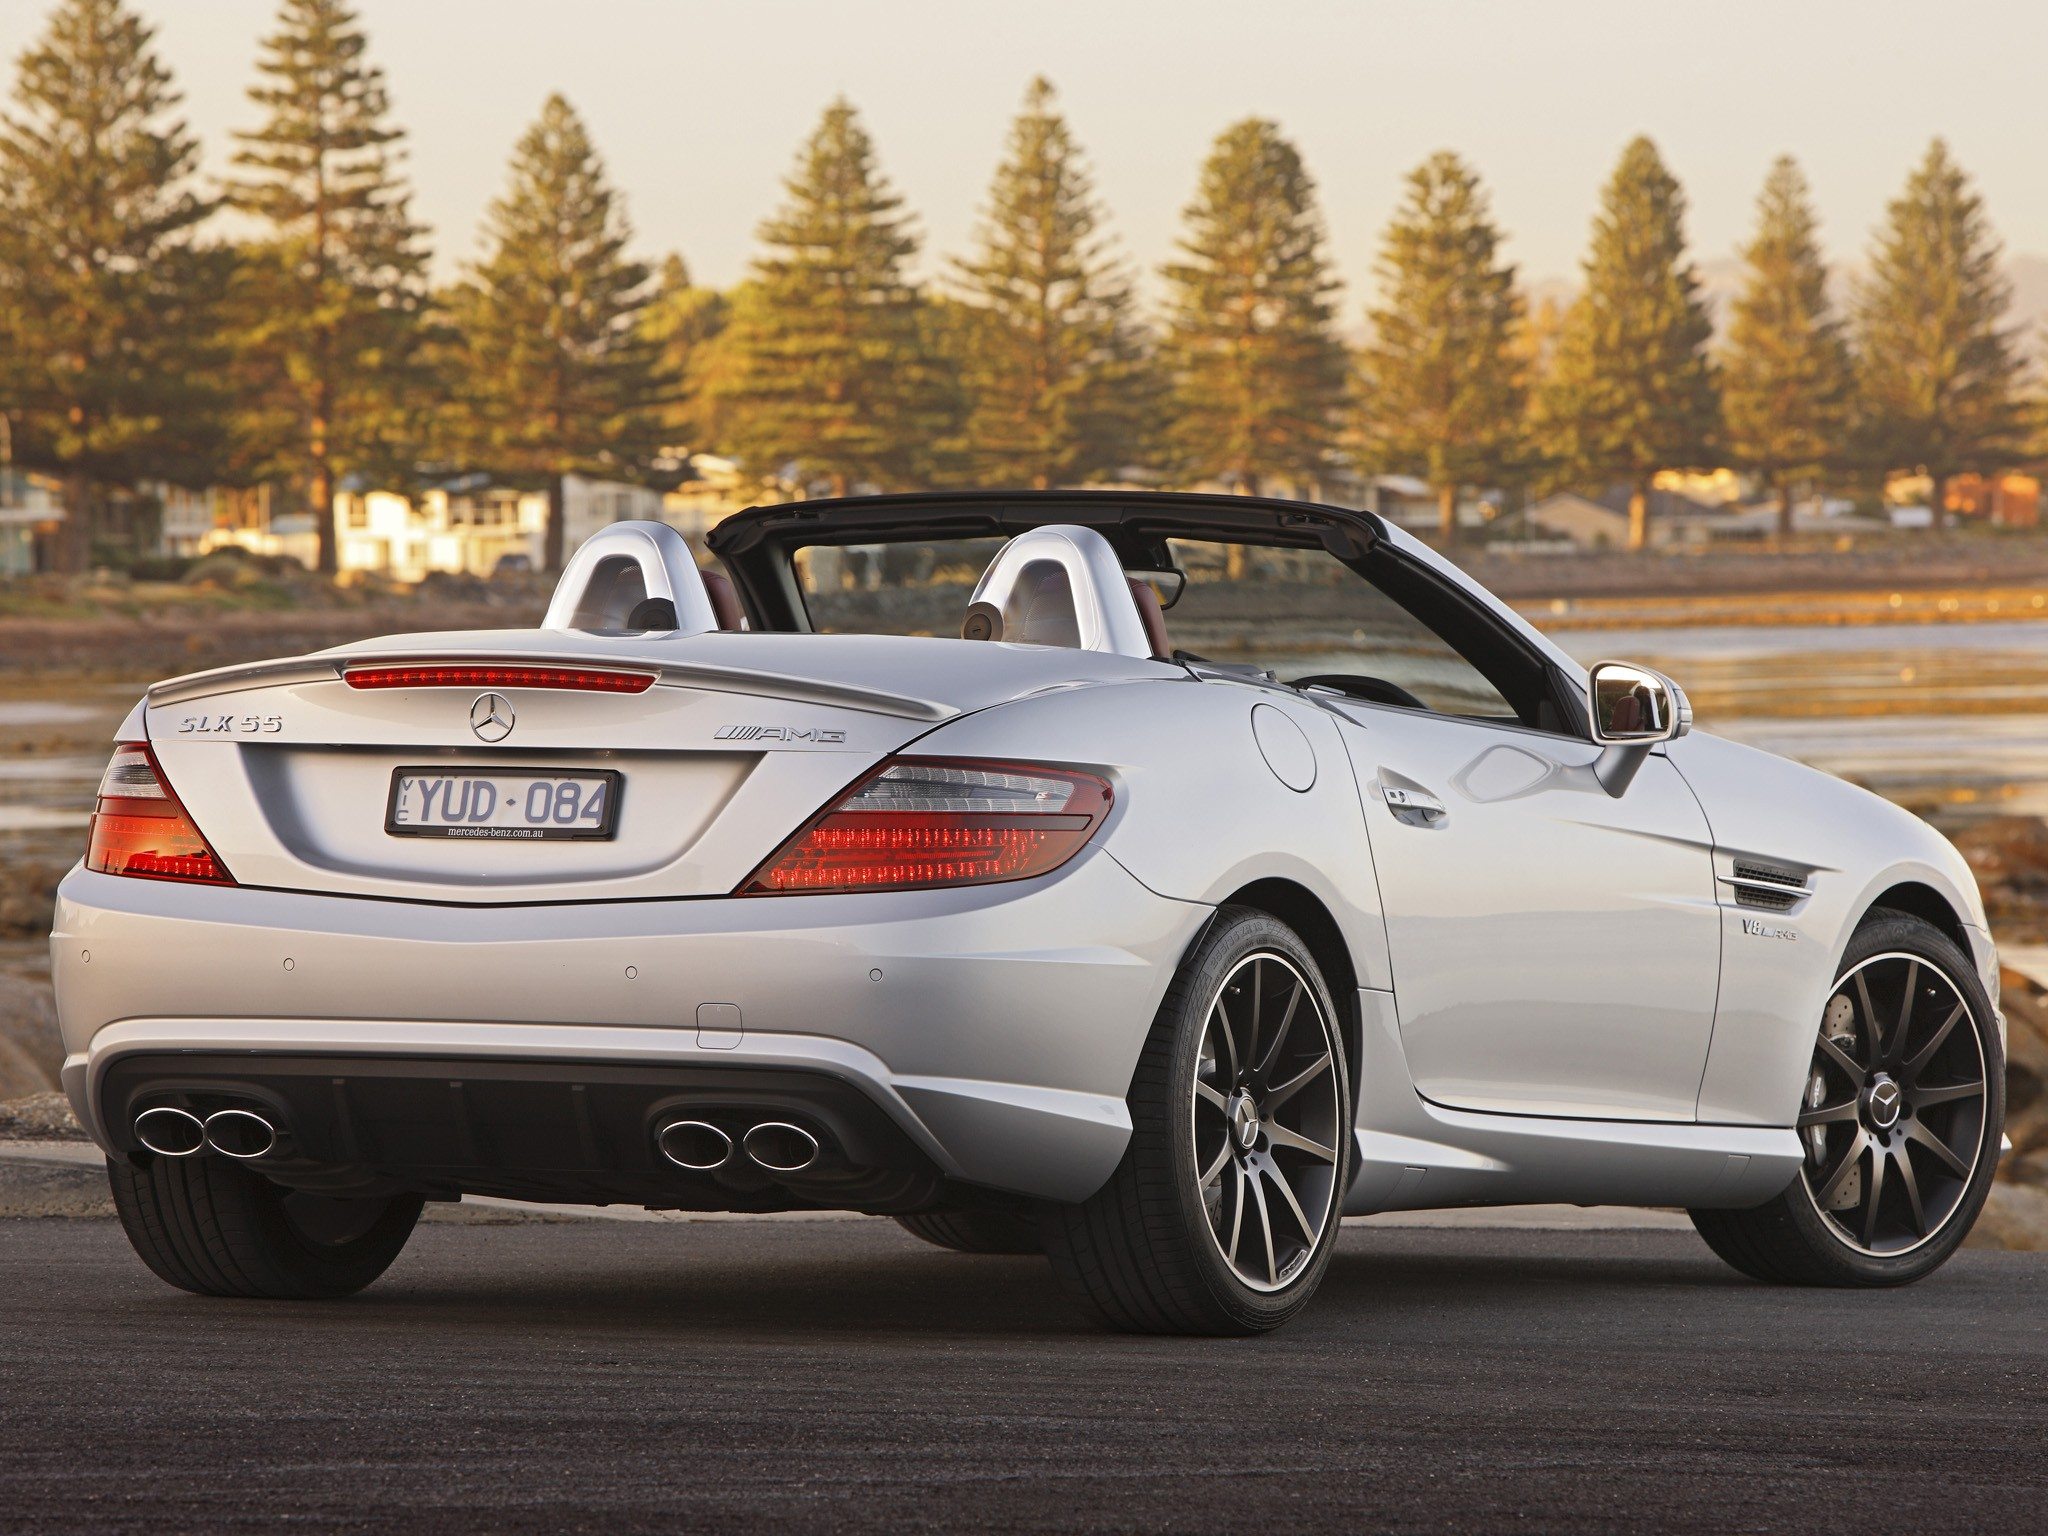 mercedes benz slk 55 amg r172 specs photos 2012 2013 2014 2015 2016 autoevolution. Black Bedroom Furniture Sets. Home Design Ideas